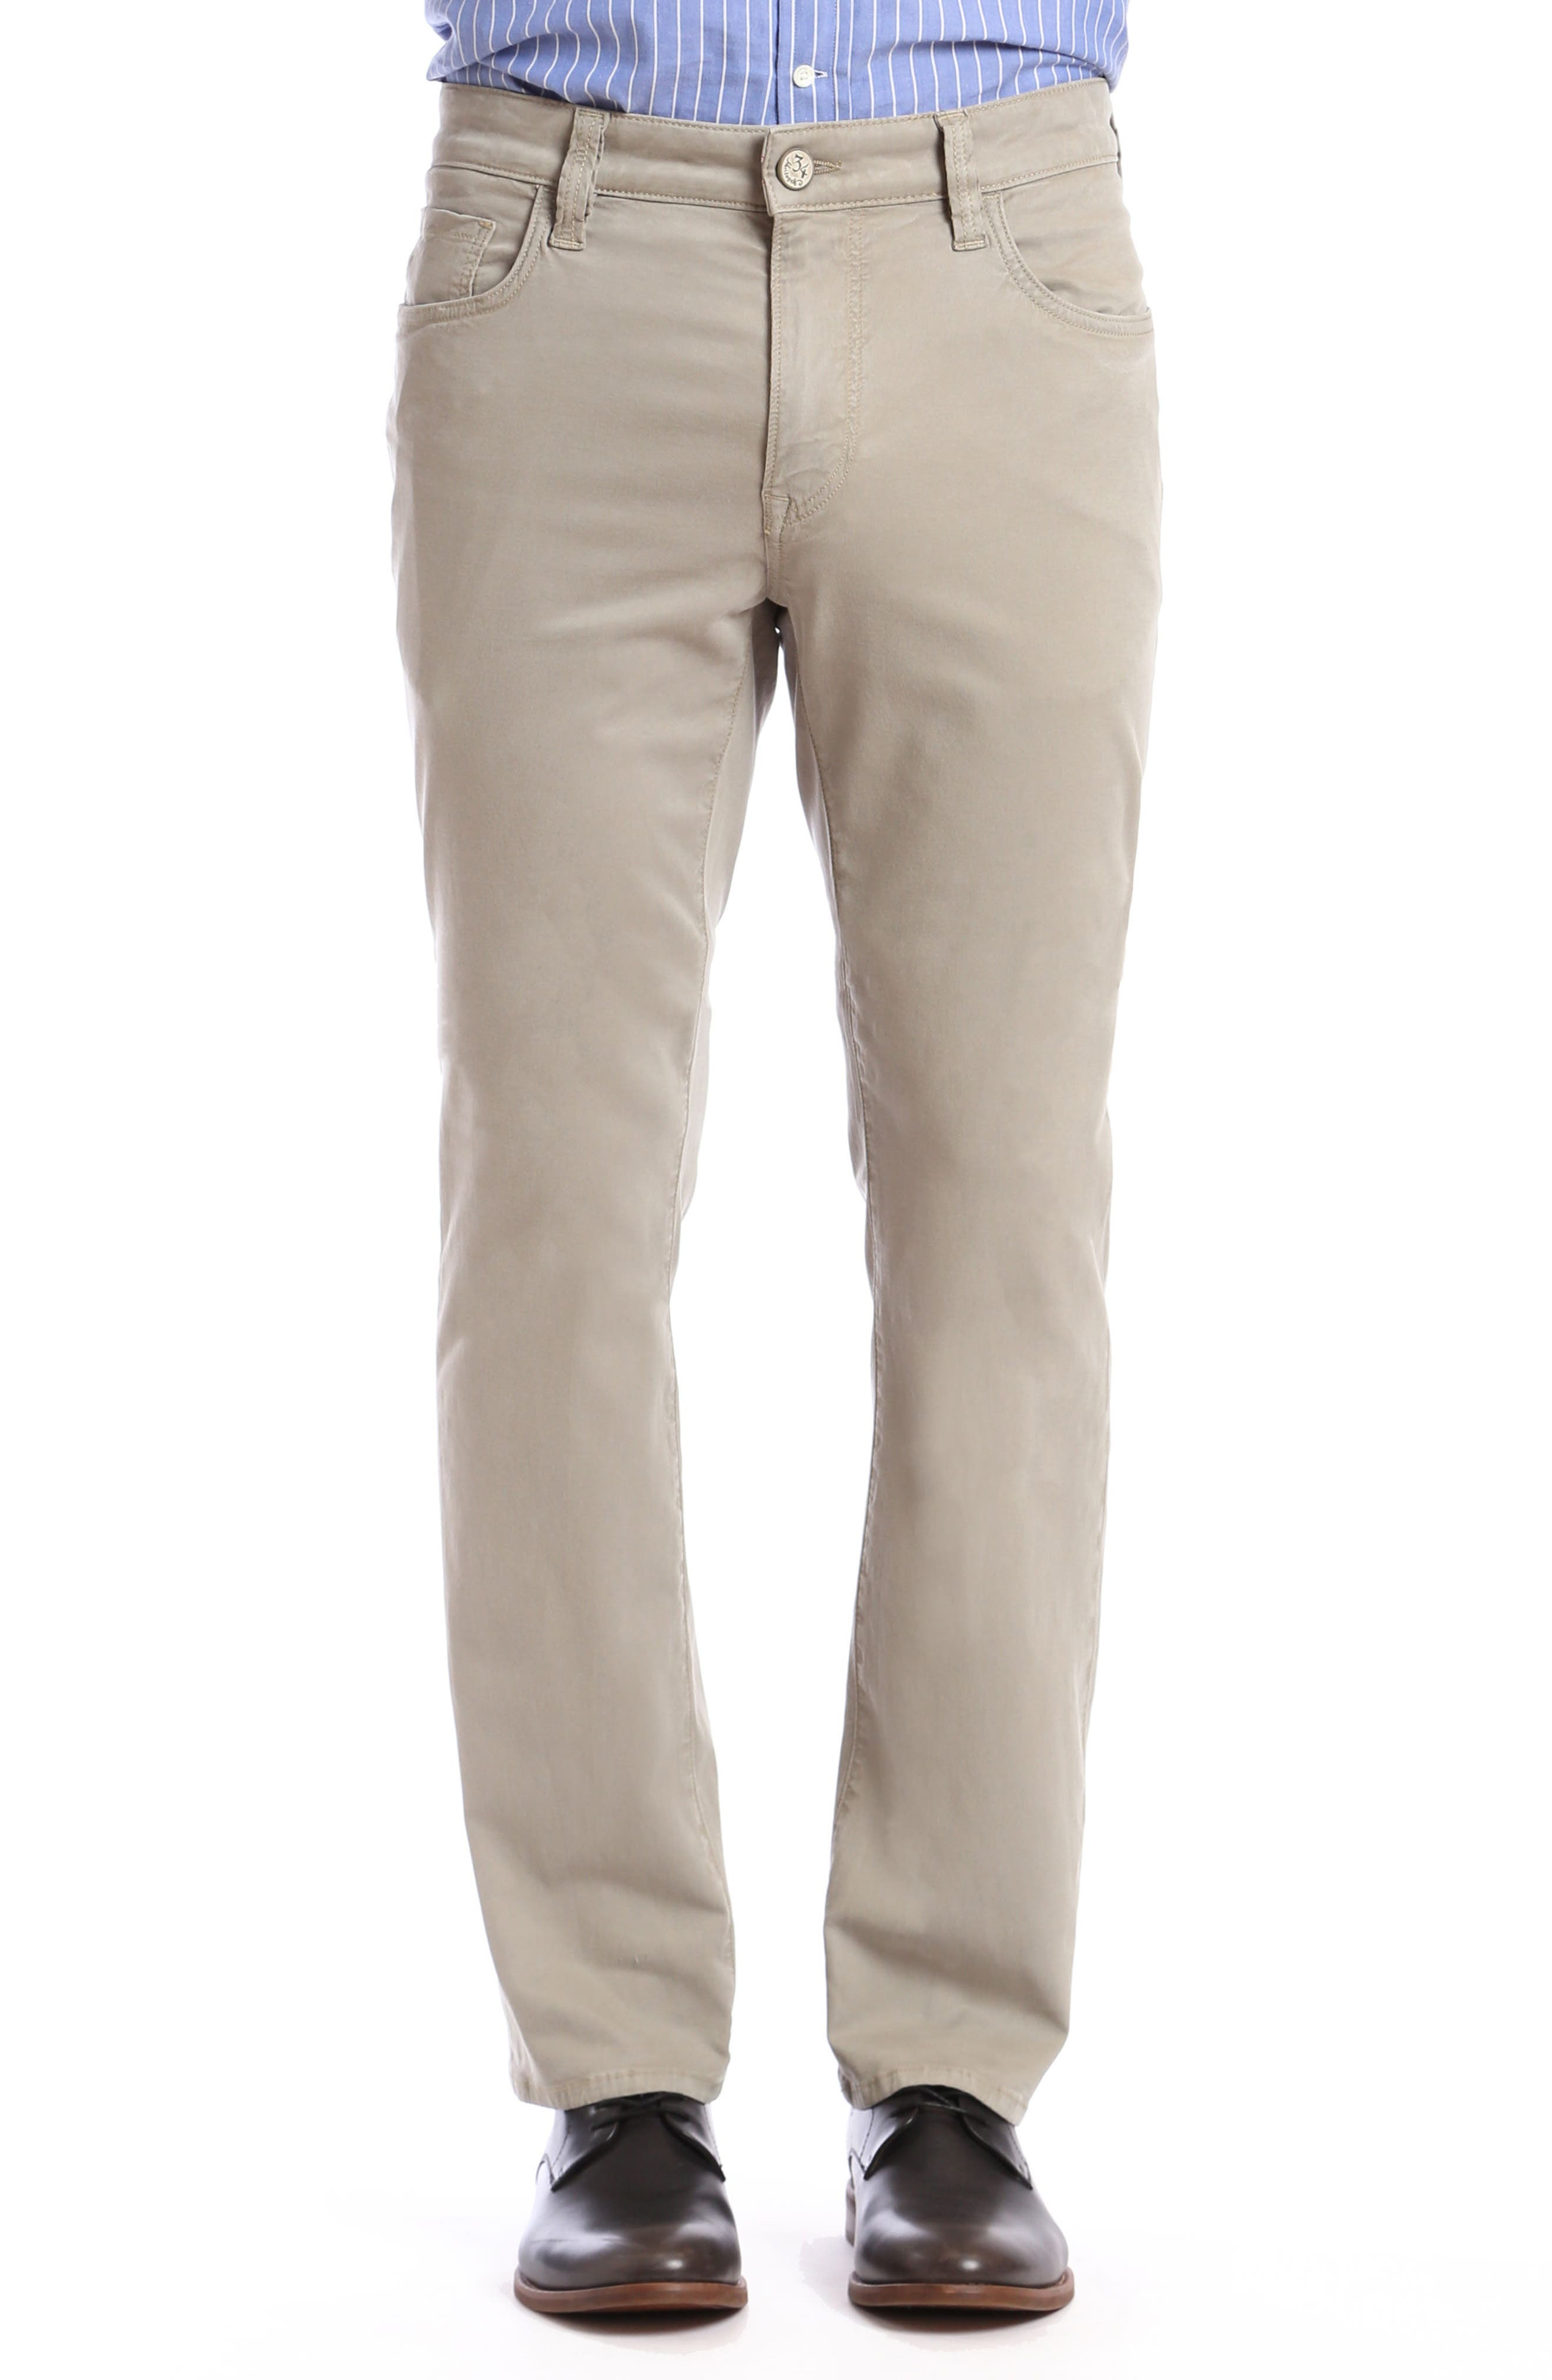 Charisma Relaxed Fit Jeans,                         Main,                         color, FINE TWILL